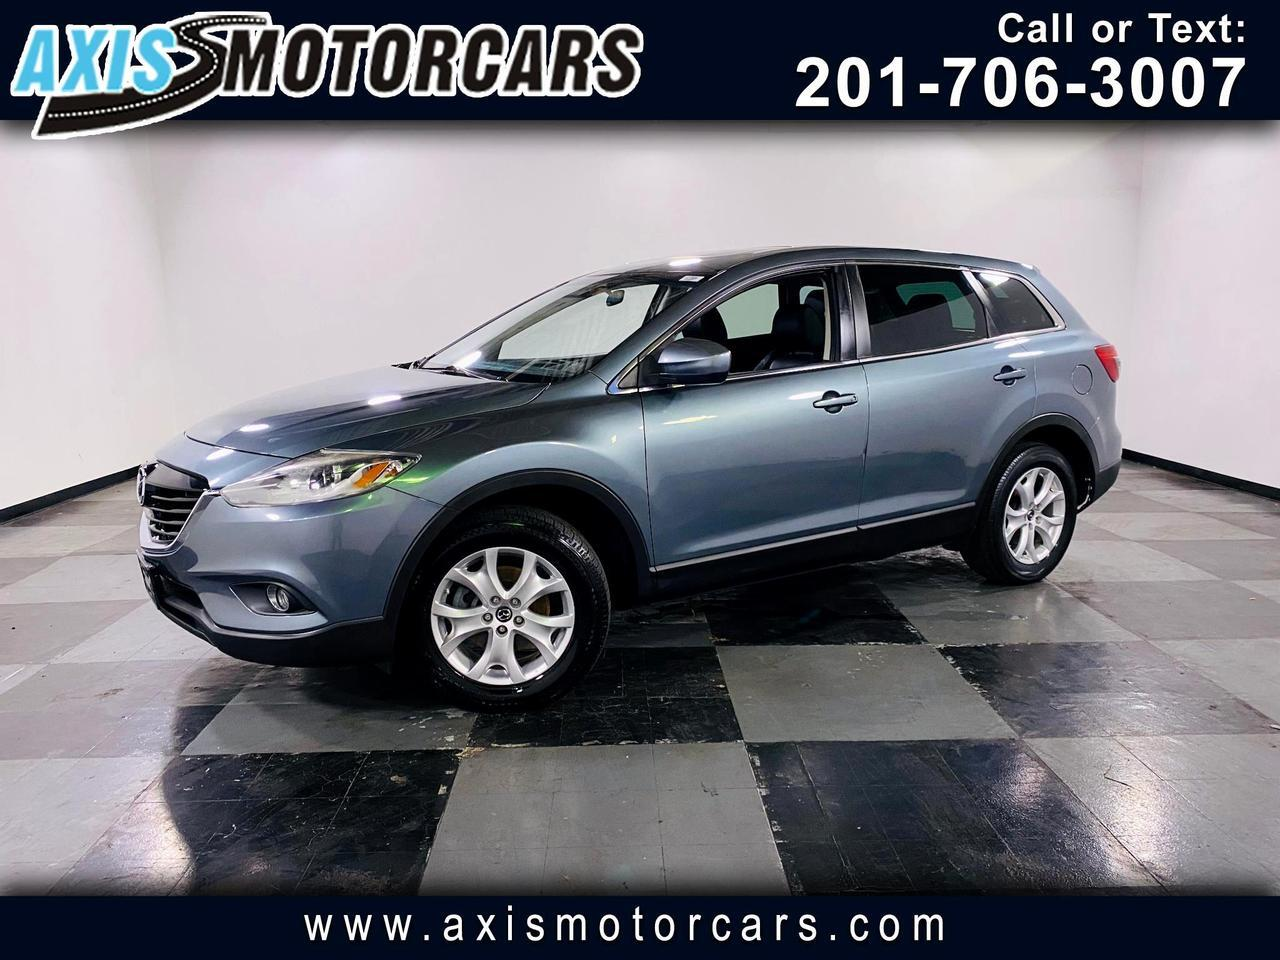 2013 Mazda CX-9 AWD 4dr w/Backup Camera Navigation Sun Roof Jersey City NJ